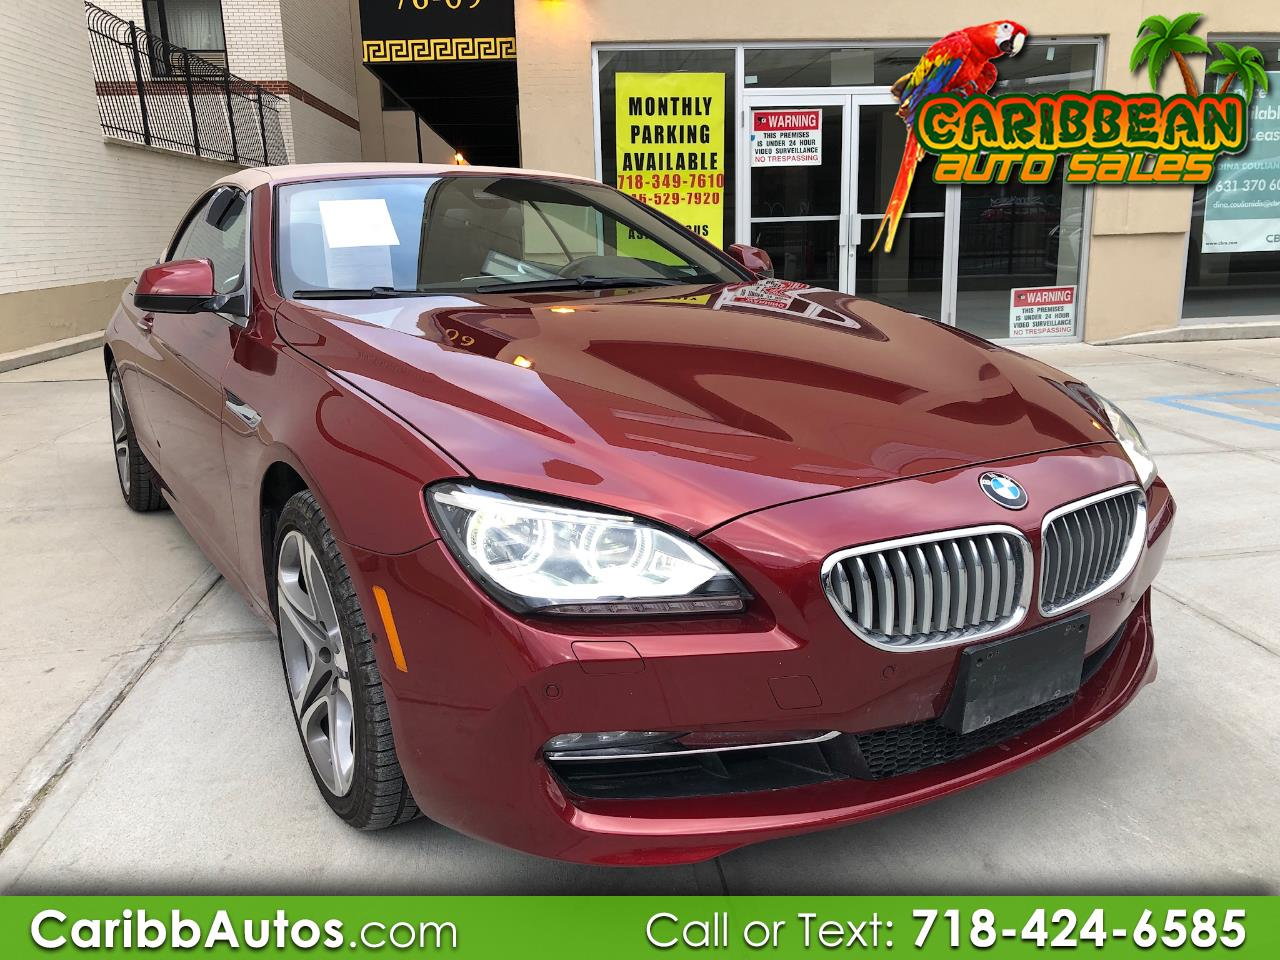 BMW 6 Series 2dr Conv 650i xDrive AWD 2015